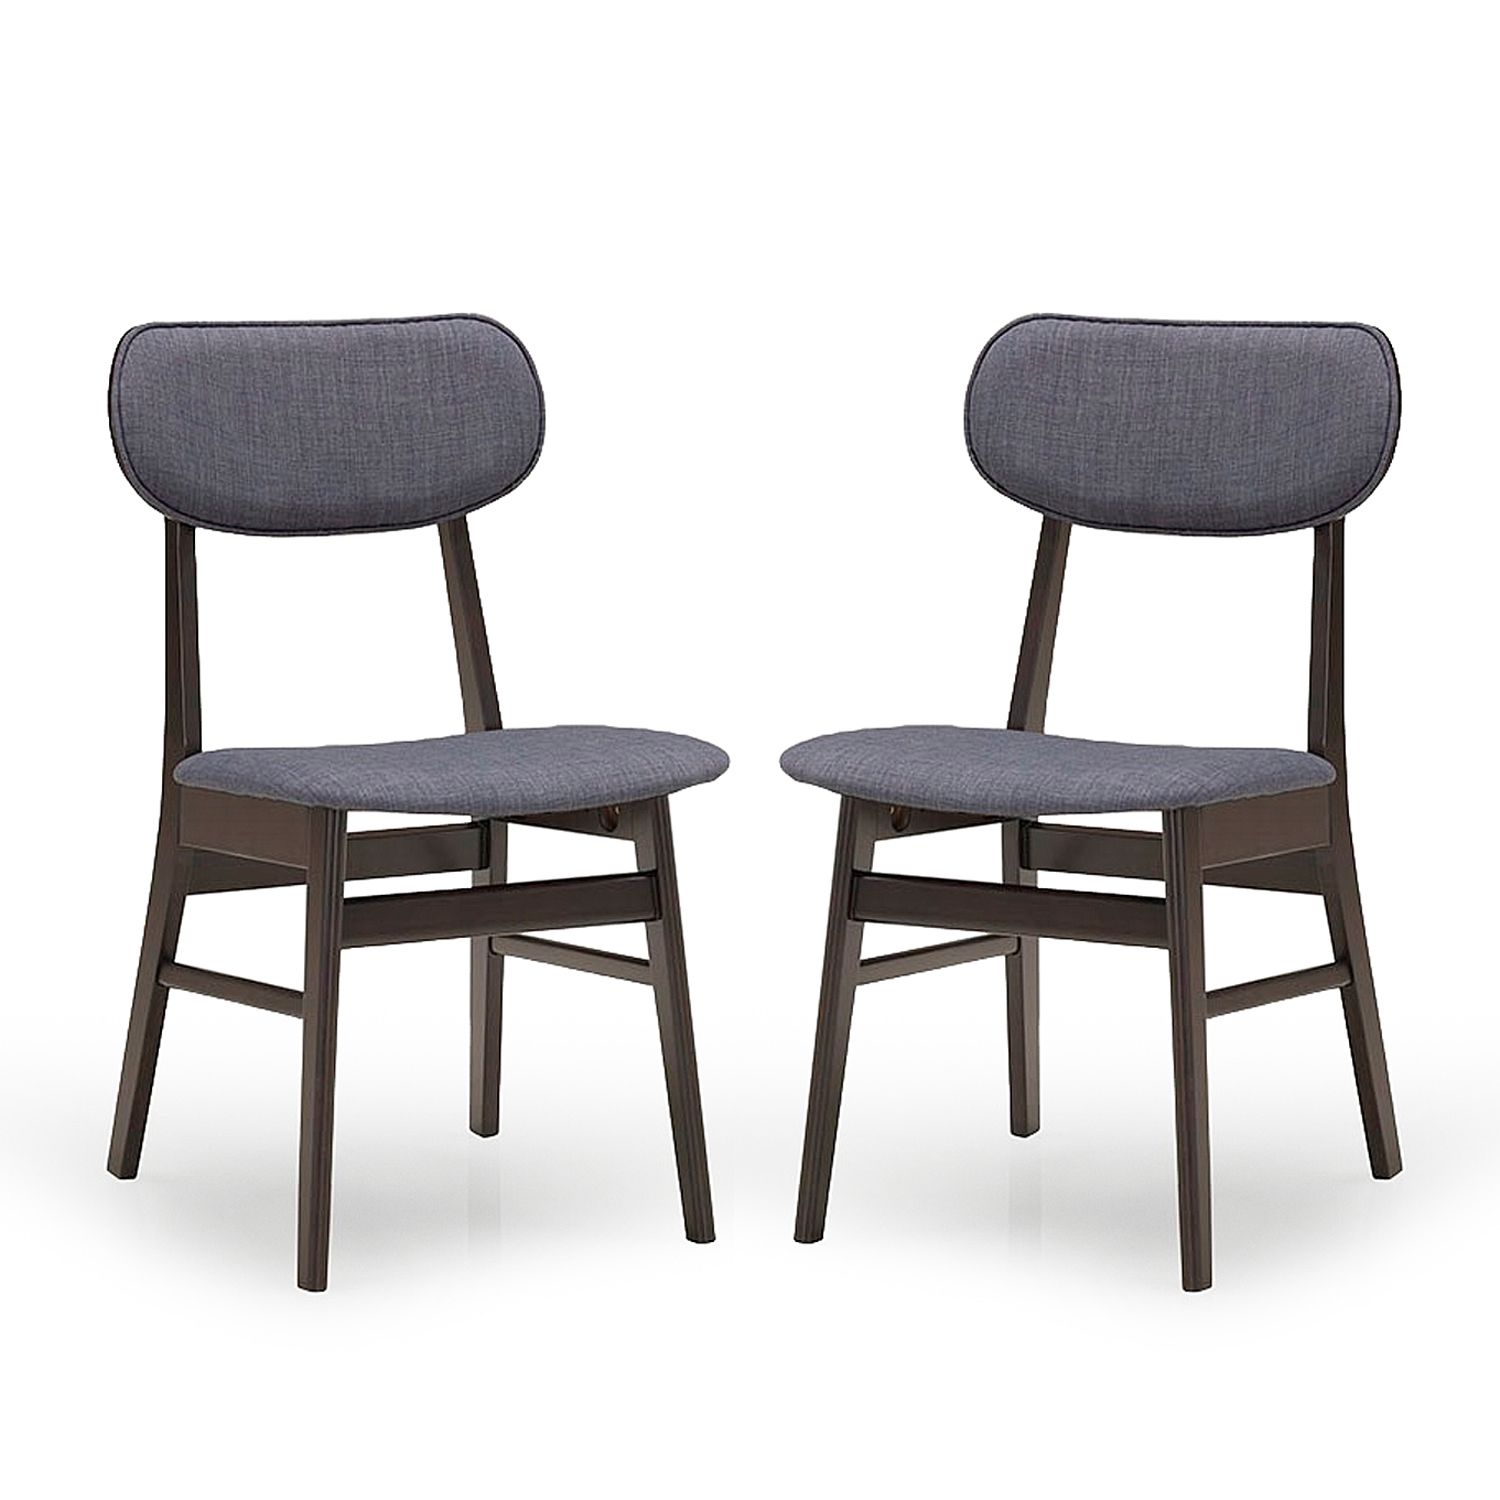 Cheap Wood Dining Chairs: Cheap! Baxton Studio Montreal Mid-century Solid Wood